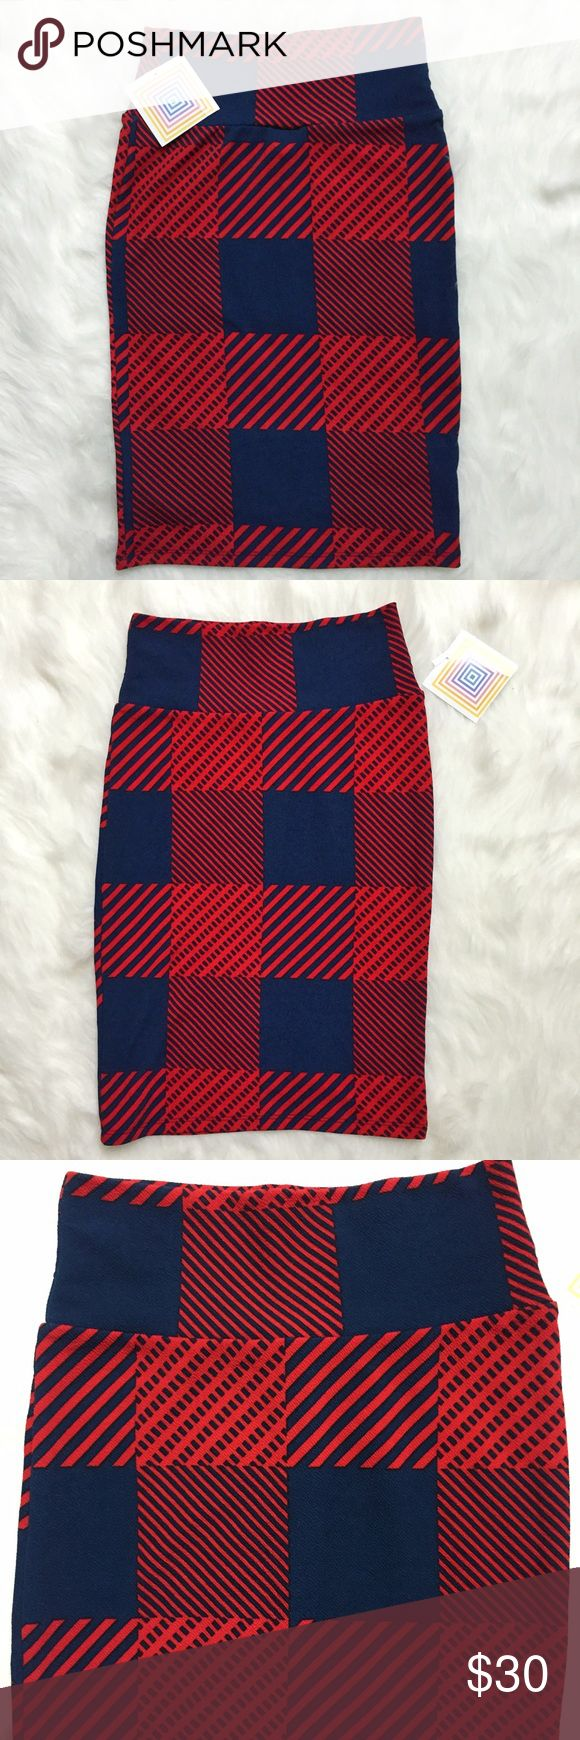 LuLaRoe Cassie Red & Blue Checkered Plaid Skirt Brand new with tags, women's size XS. This LuLaRoe Cassie Red & Blue Checkered Plaid Skirt is so cute! Love the alternating red and blue plaid pattern! So soft and comfortable. Made of 96% Polyester and 4% Spandex. LuLaRoe Skirts